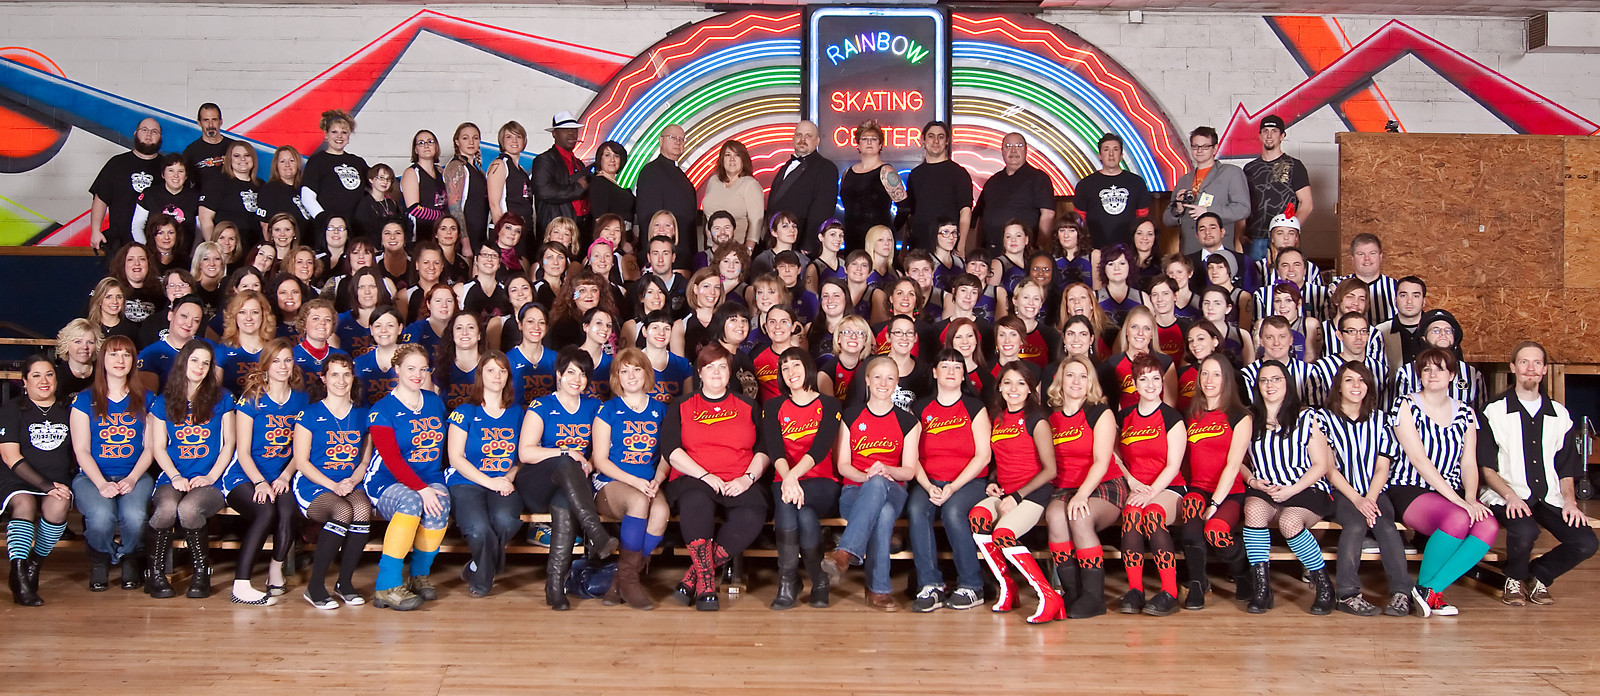 2010 Queen City Roller Girls | Photo by Fritzenfrat